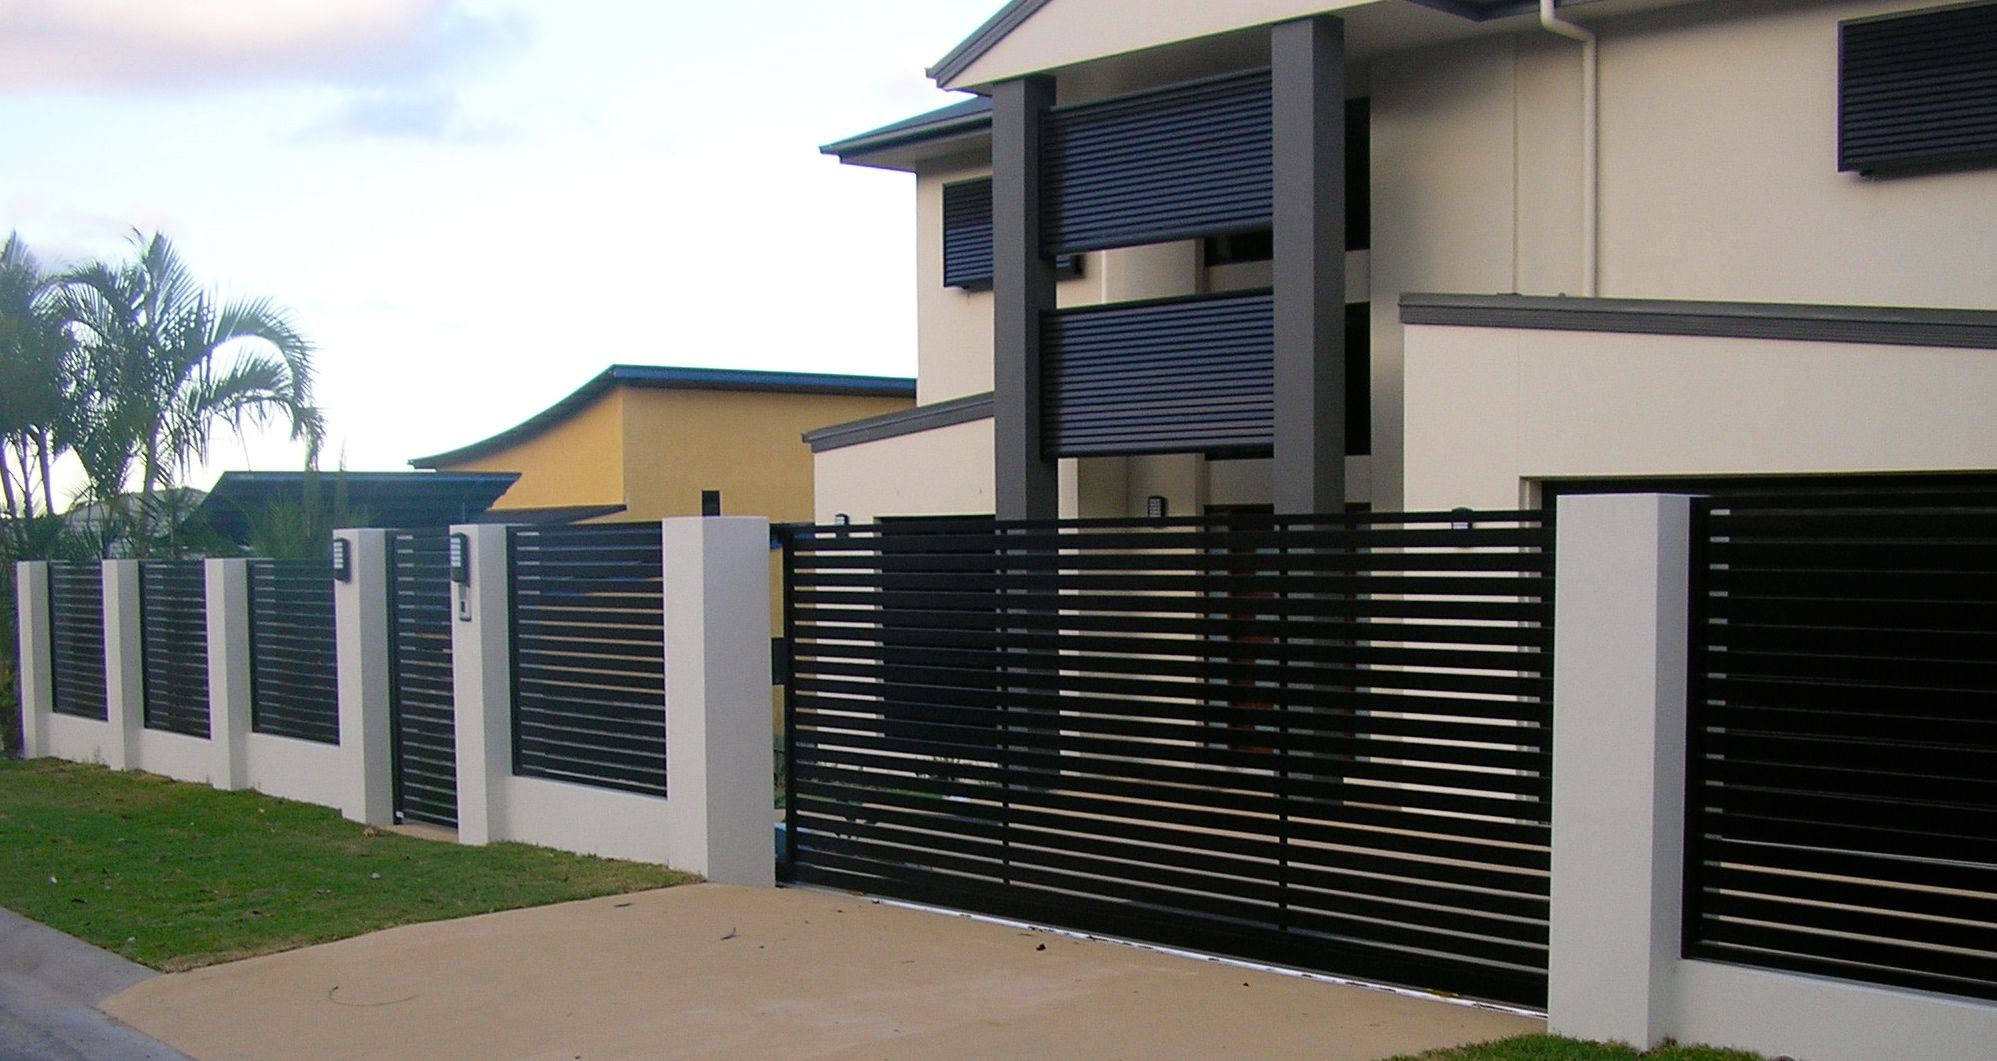 Sliding gate pedestrian gate and fence panels concrete for Modern house gate